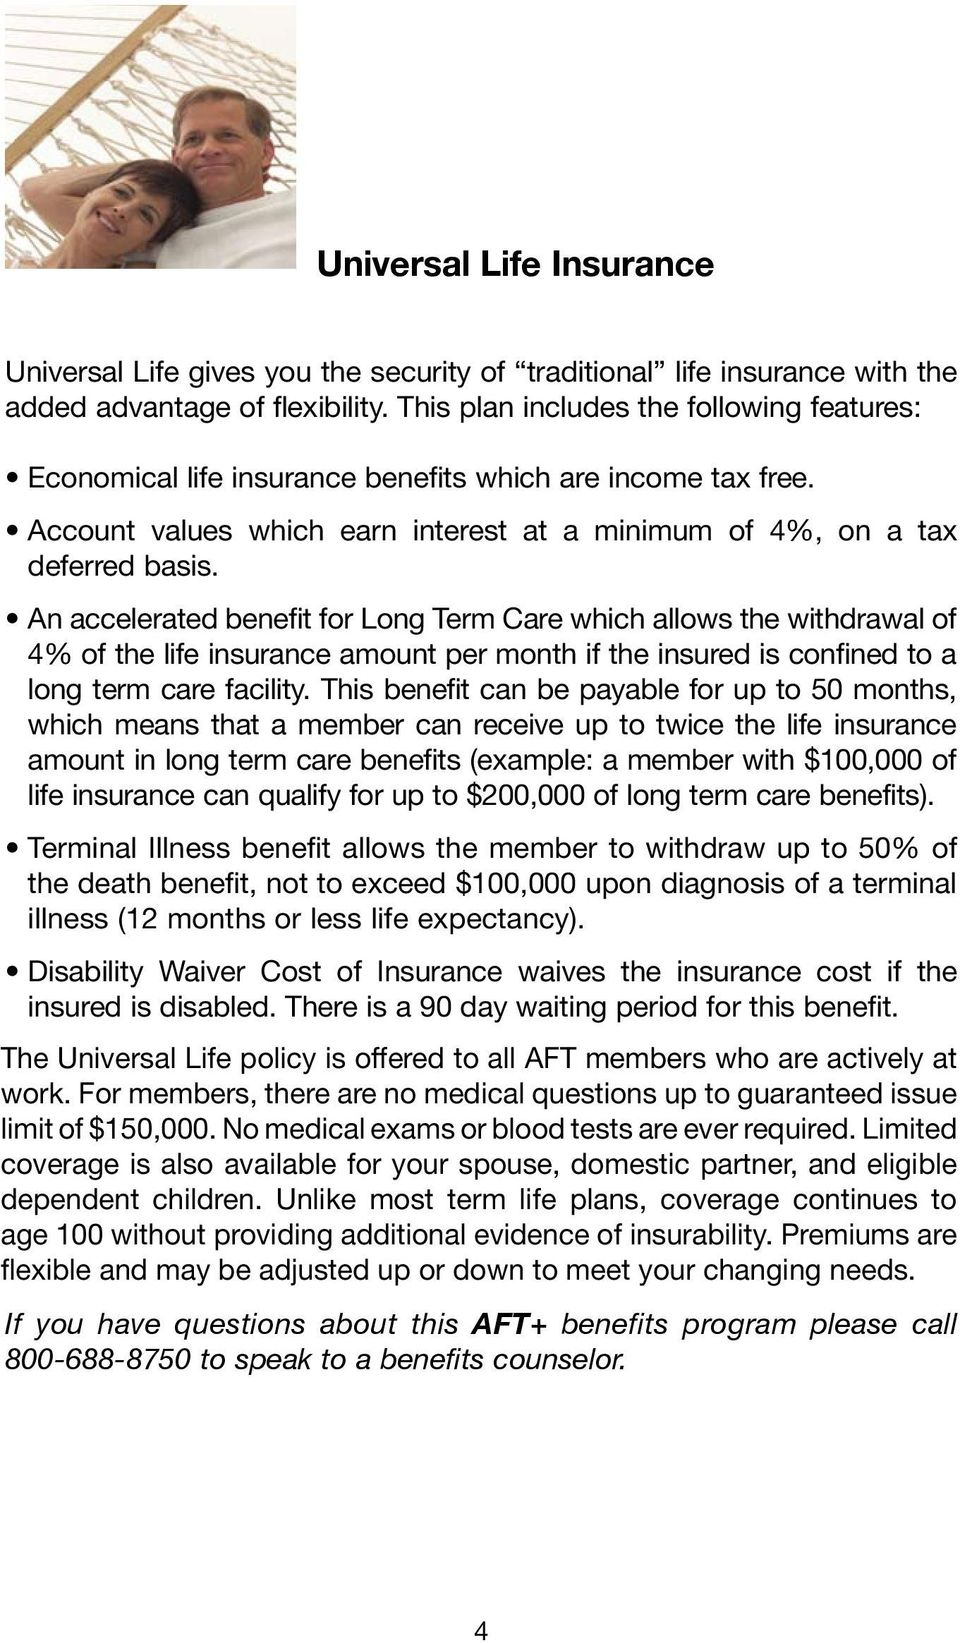 An accelerated benefit for Long Term Care which allows the withdrawal of 4% of the life insurance amount per month if the insured is confined to a long term care facility.